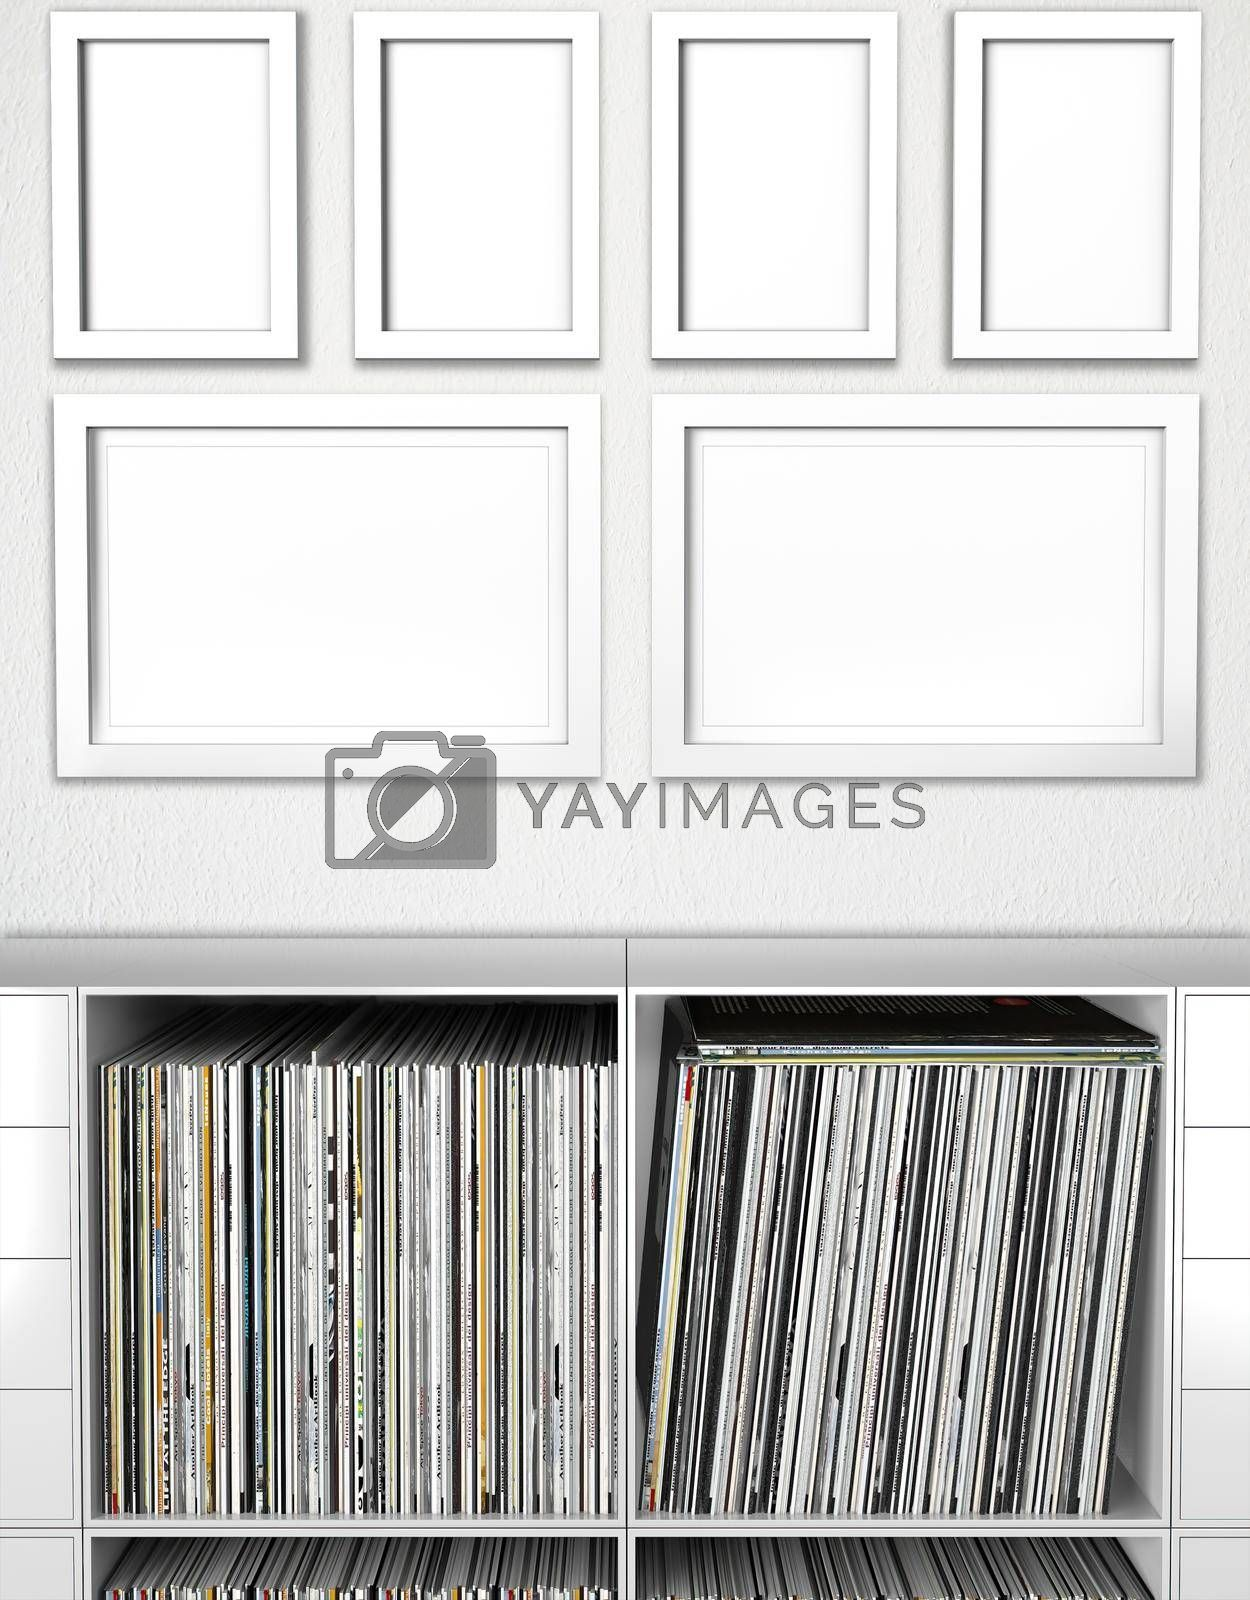 Photorealistic Poster Mockup Frames With Empty Bookcase 5mm 6 Frame